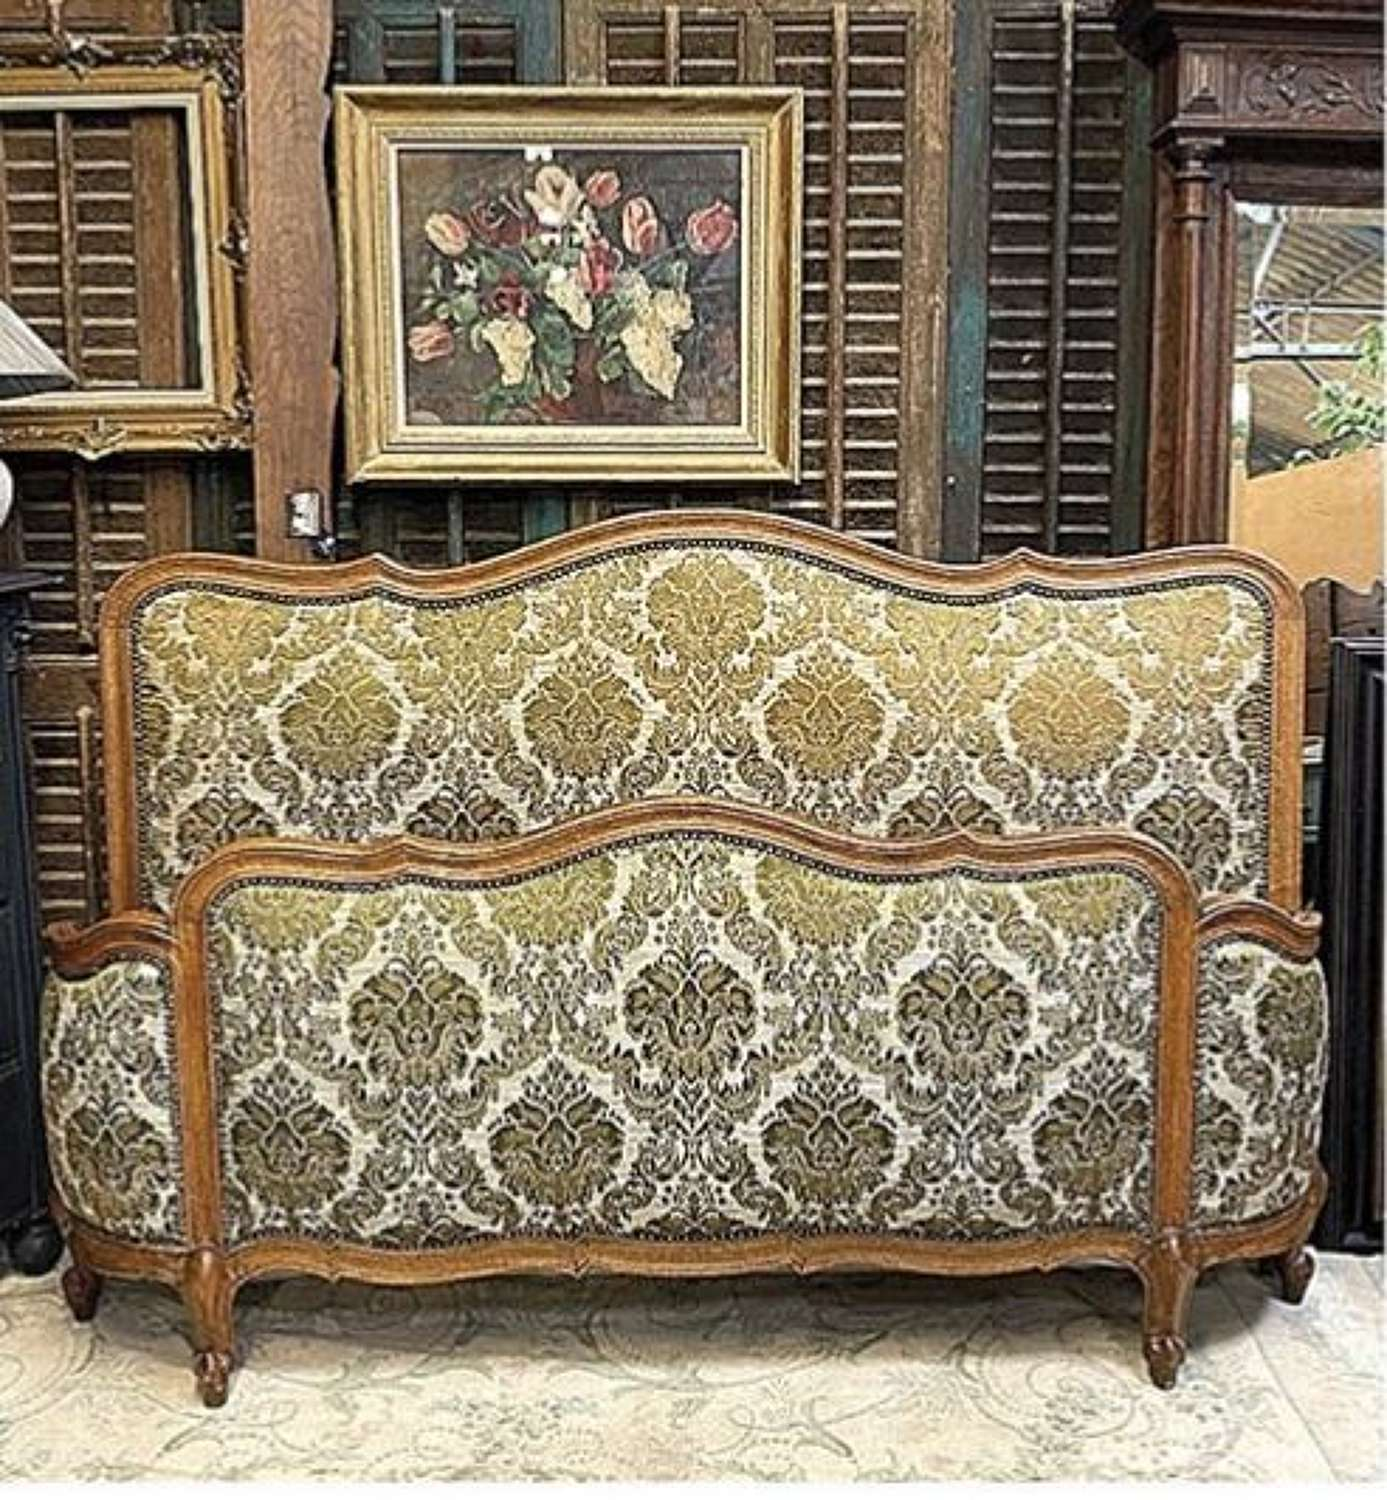 A king size french corbeille bed with a green jacquard fabric